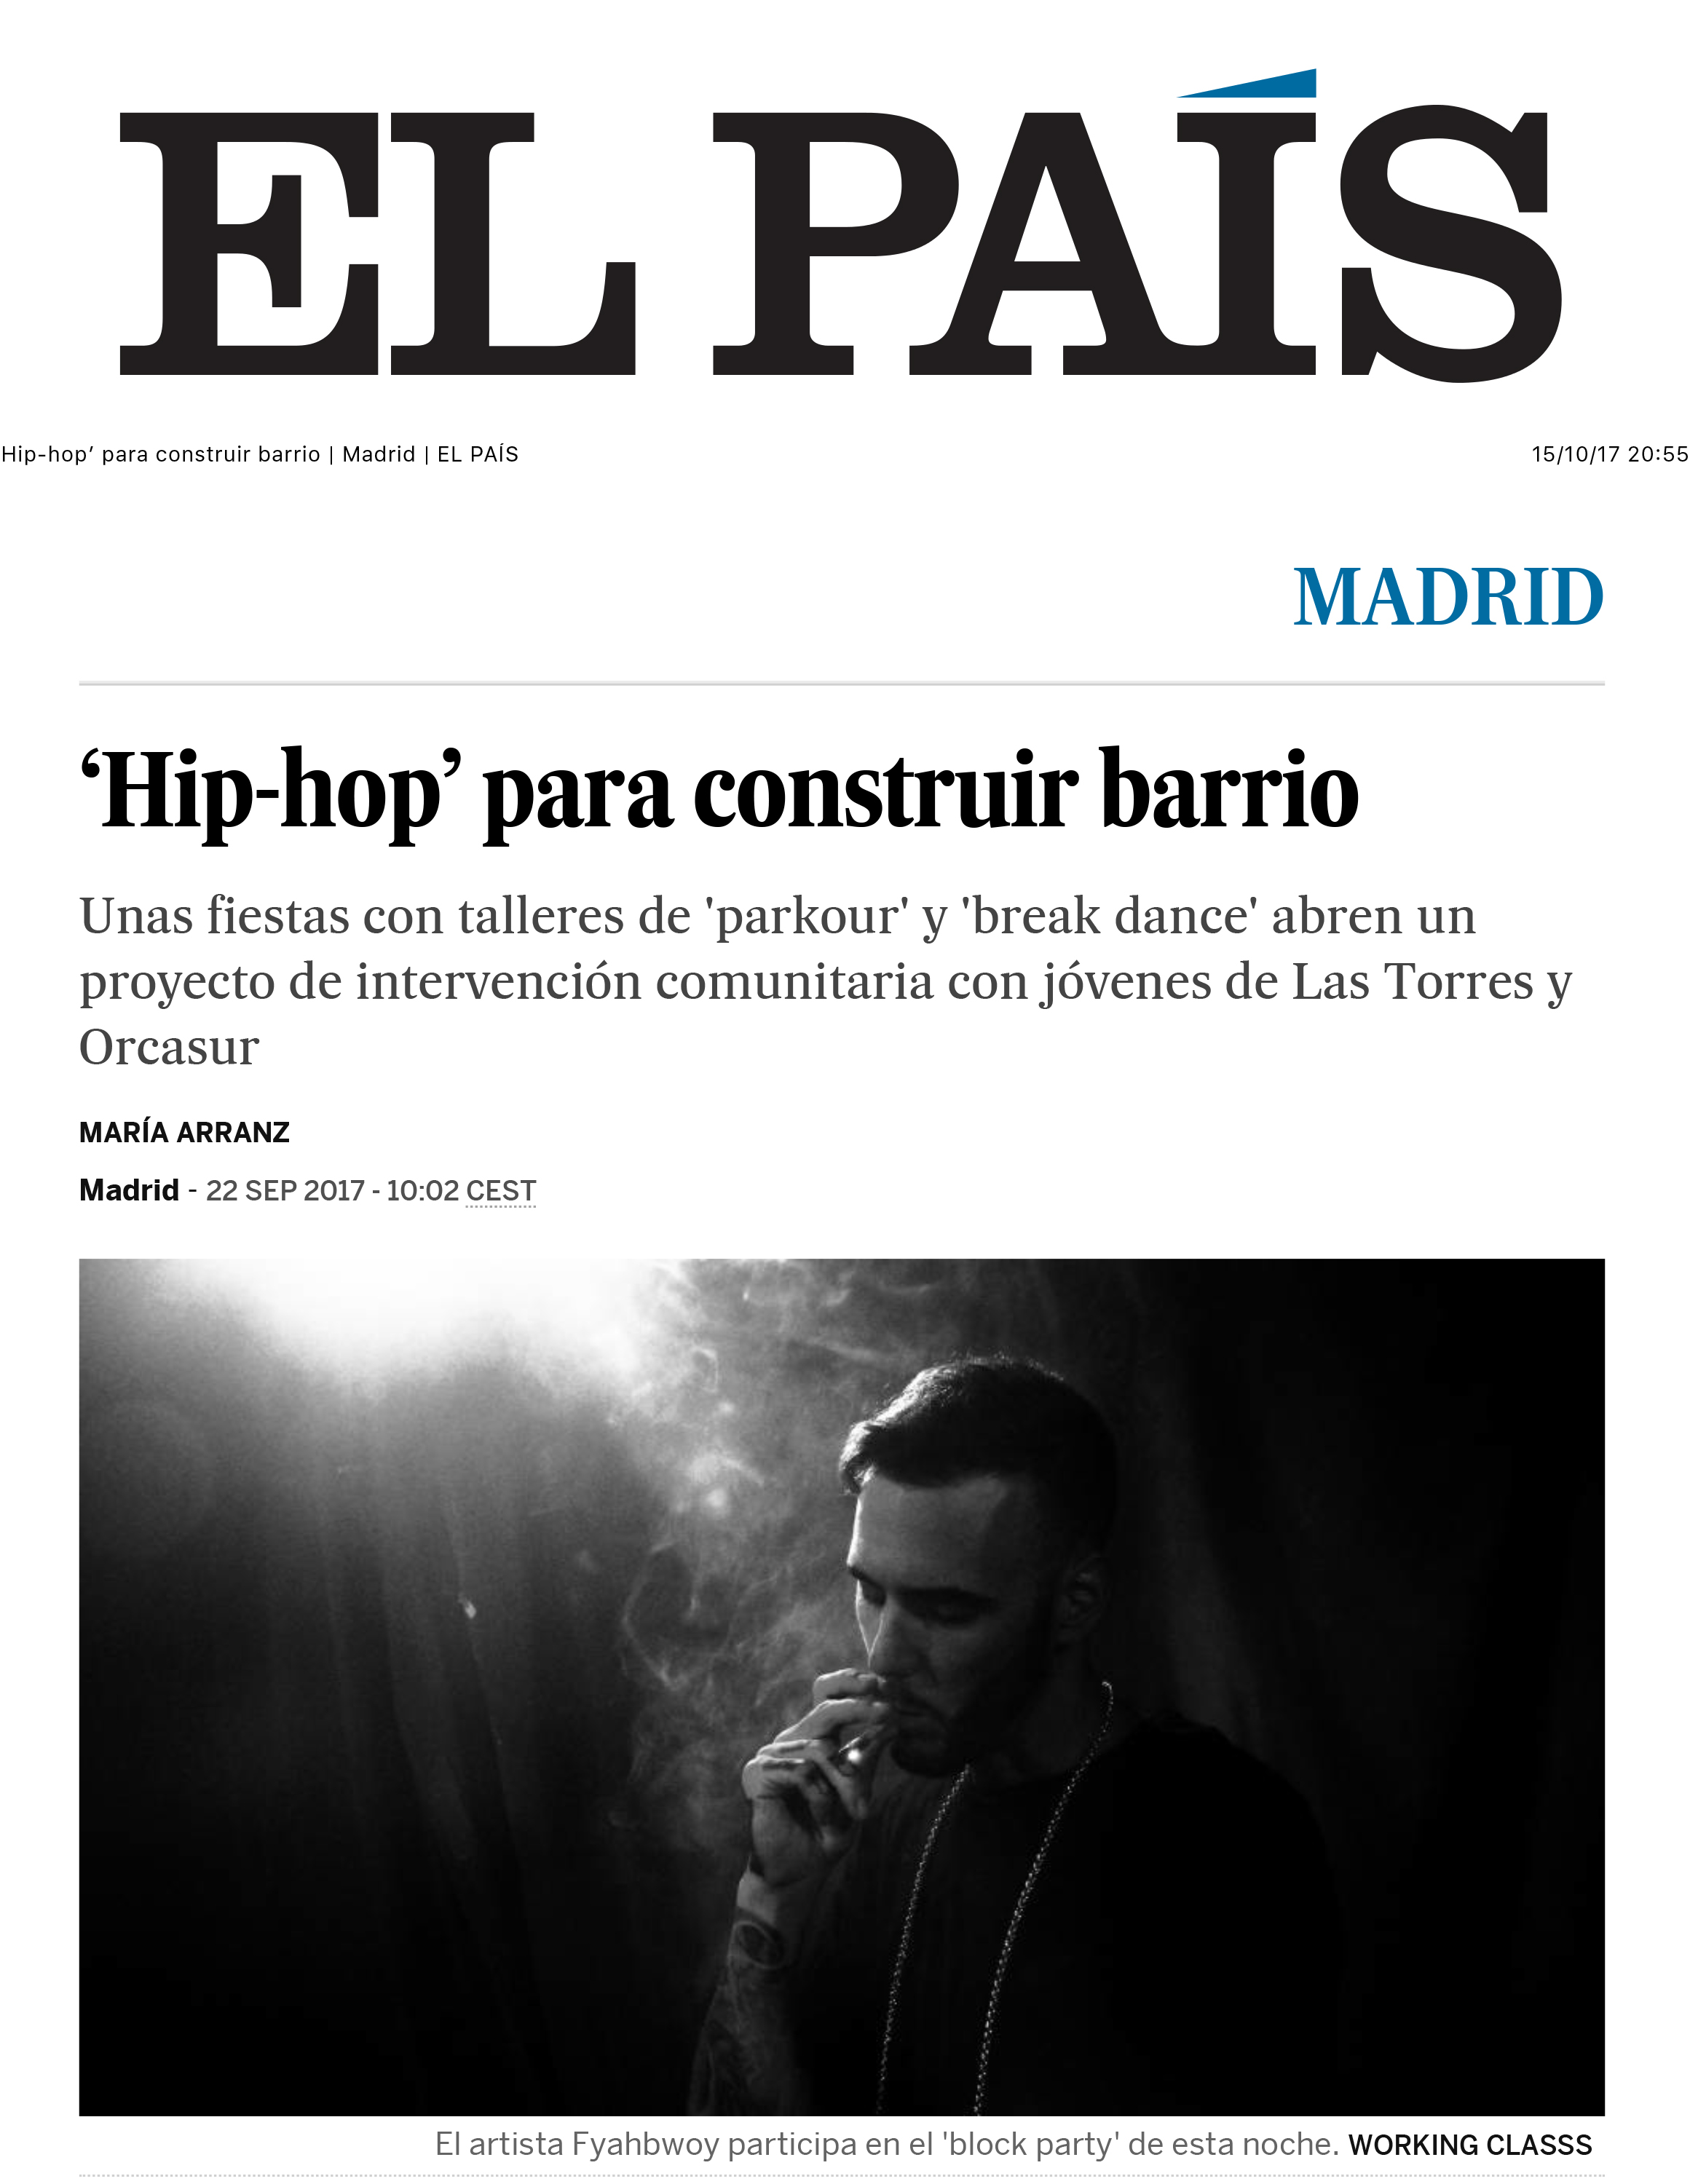 'Hip-hop' para construir barrio | Madrid | EL PAÍS